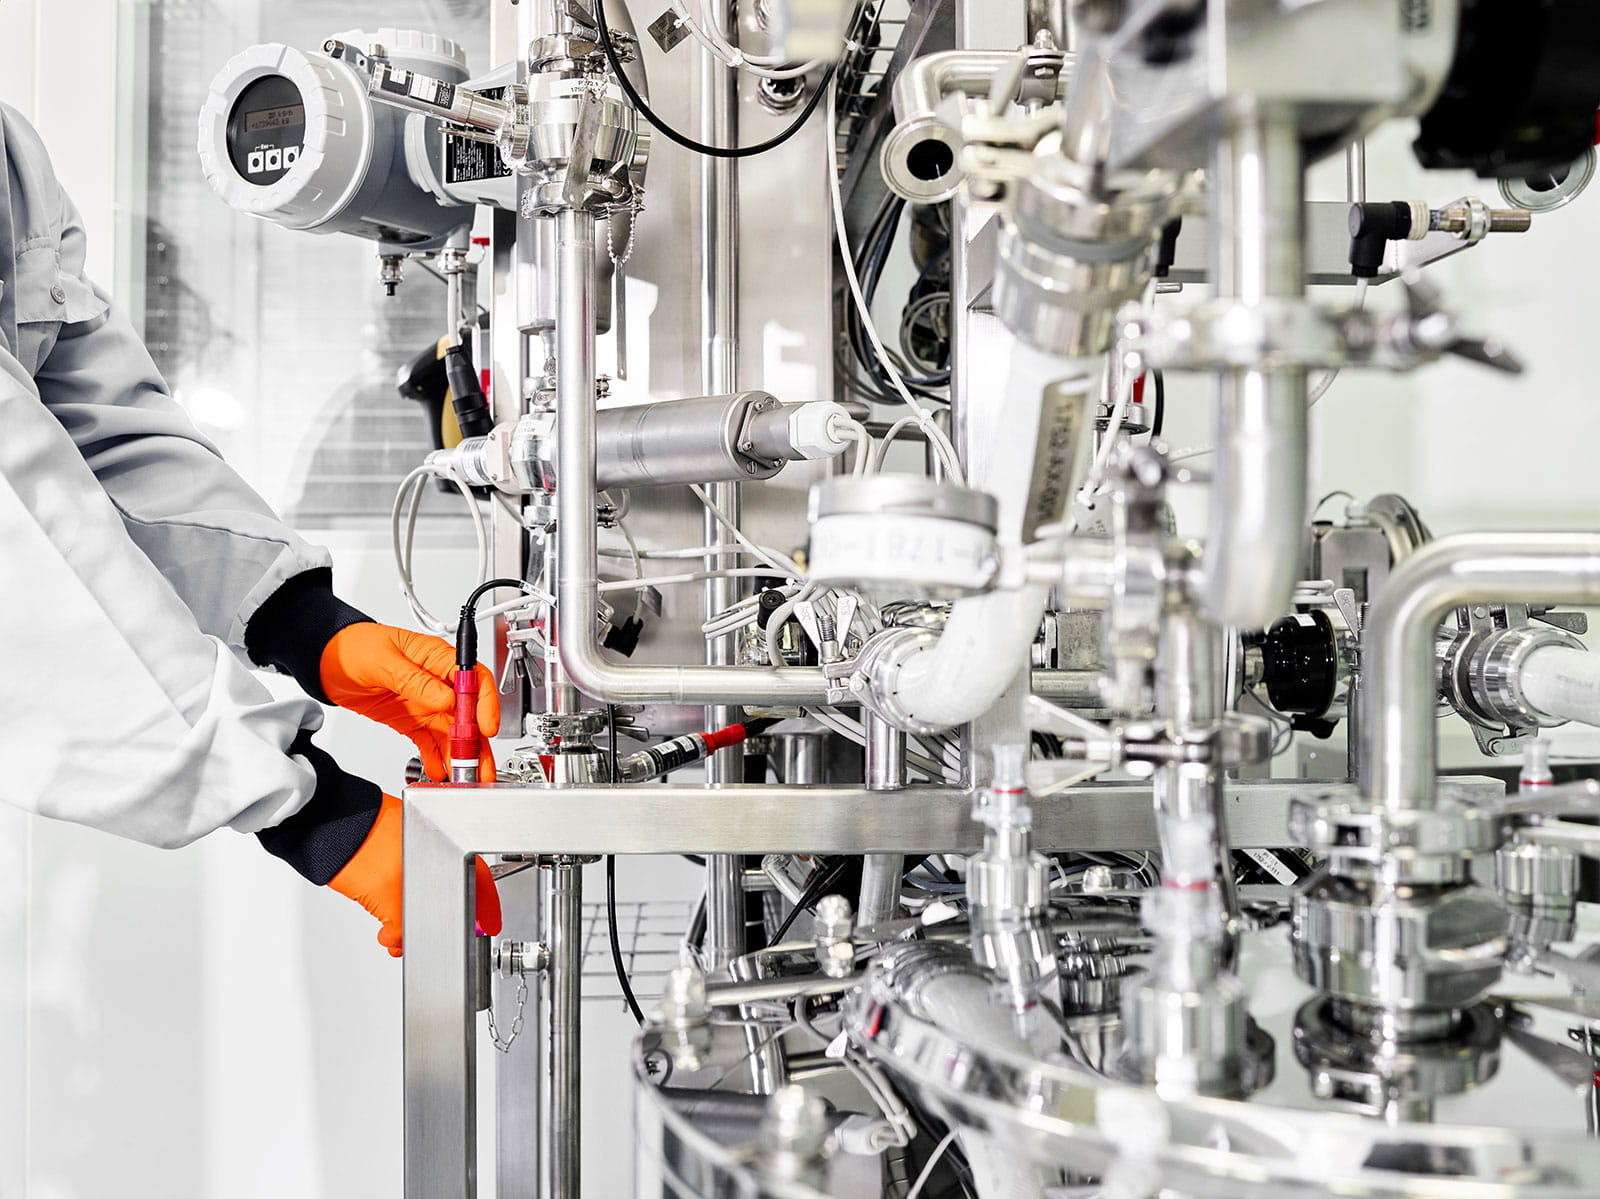 CSL Limited is a global biotherapy industry leader